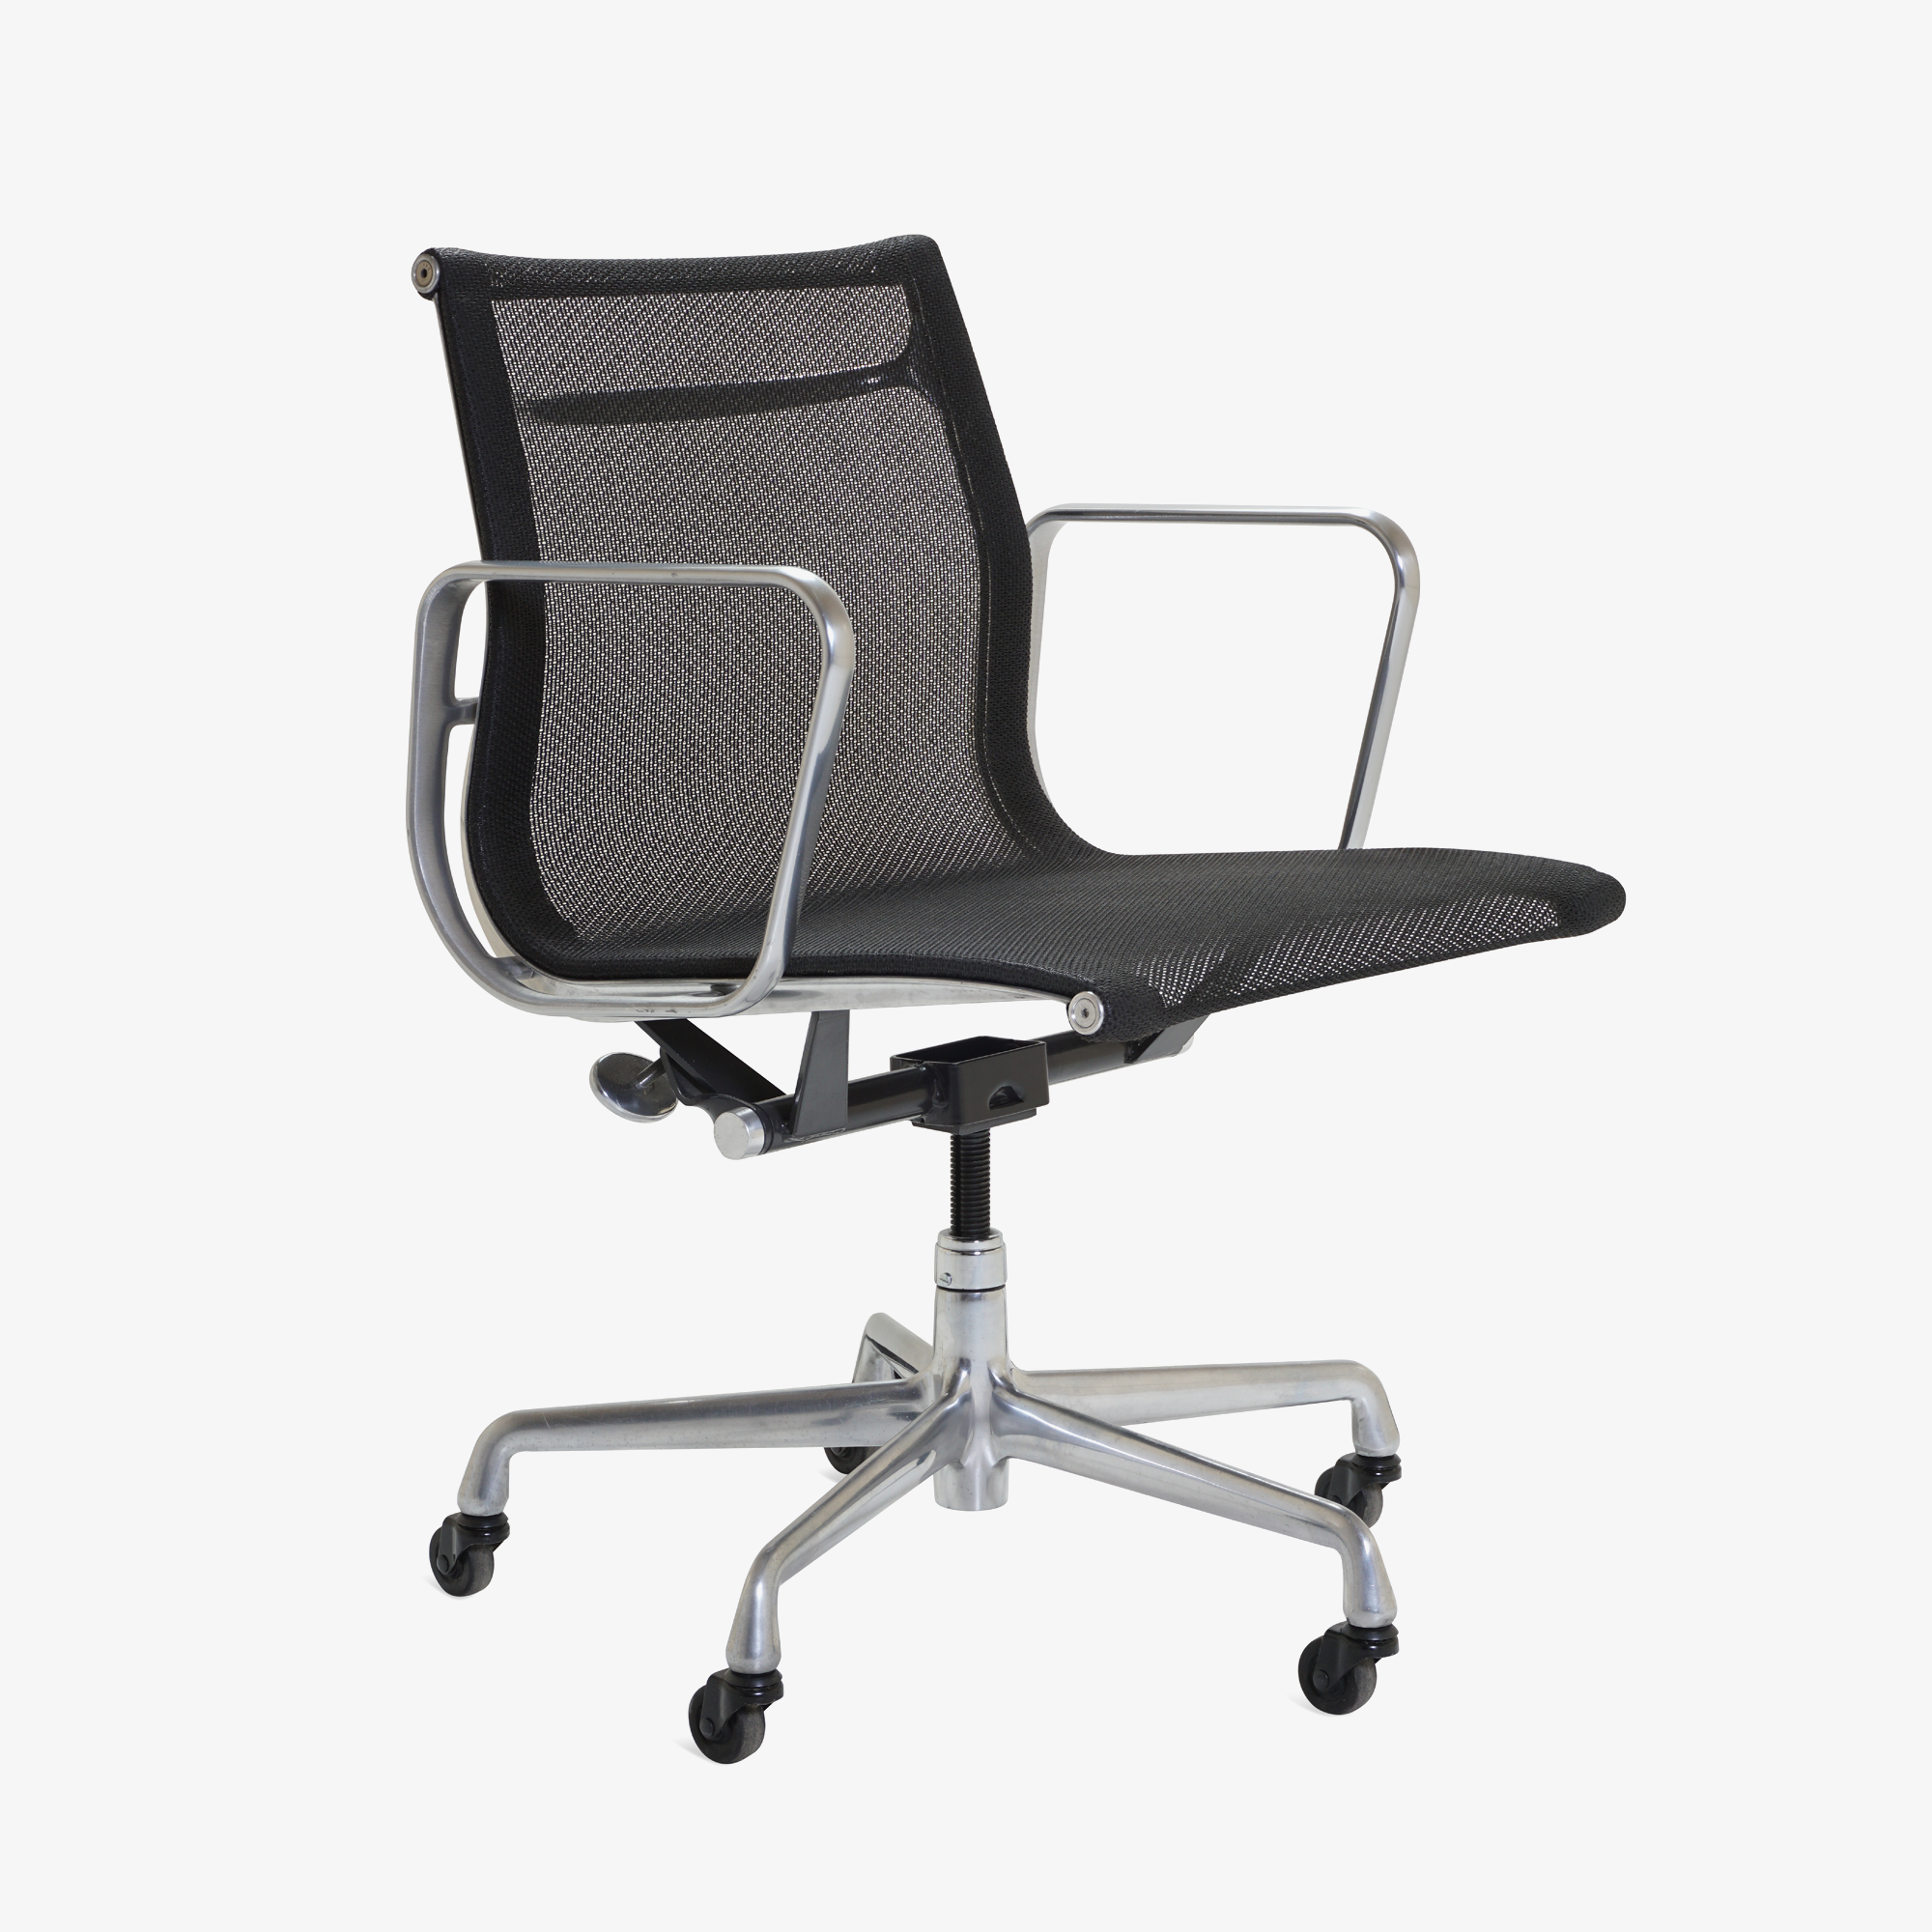 Aluminum Group Management Chair in Black Mesh by Charles & Ray Eames for Herman Miller2.png